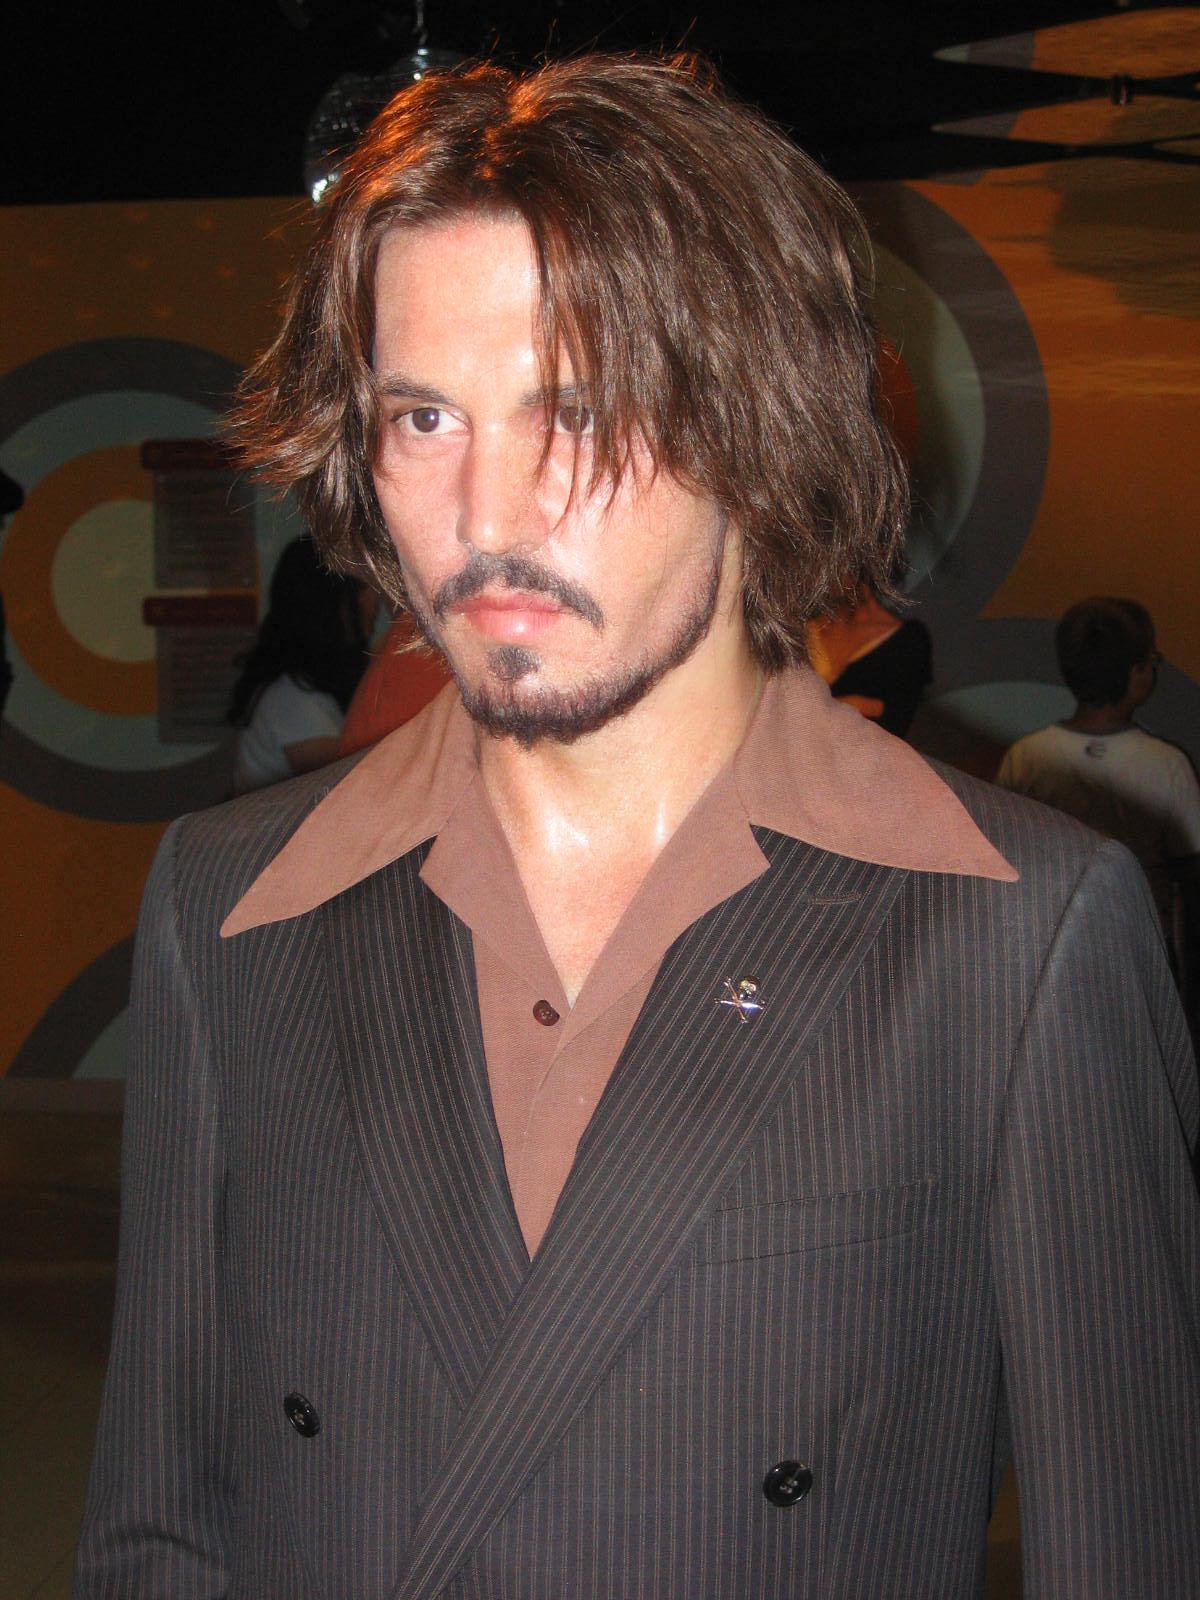 Displaying 17 gt  Images For - Patchy Beard Keanu Reeves   Patchy Beard Keanu Reeves